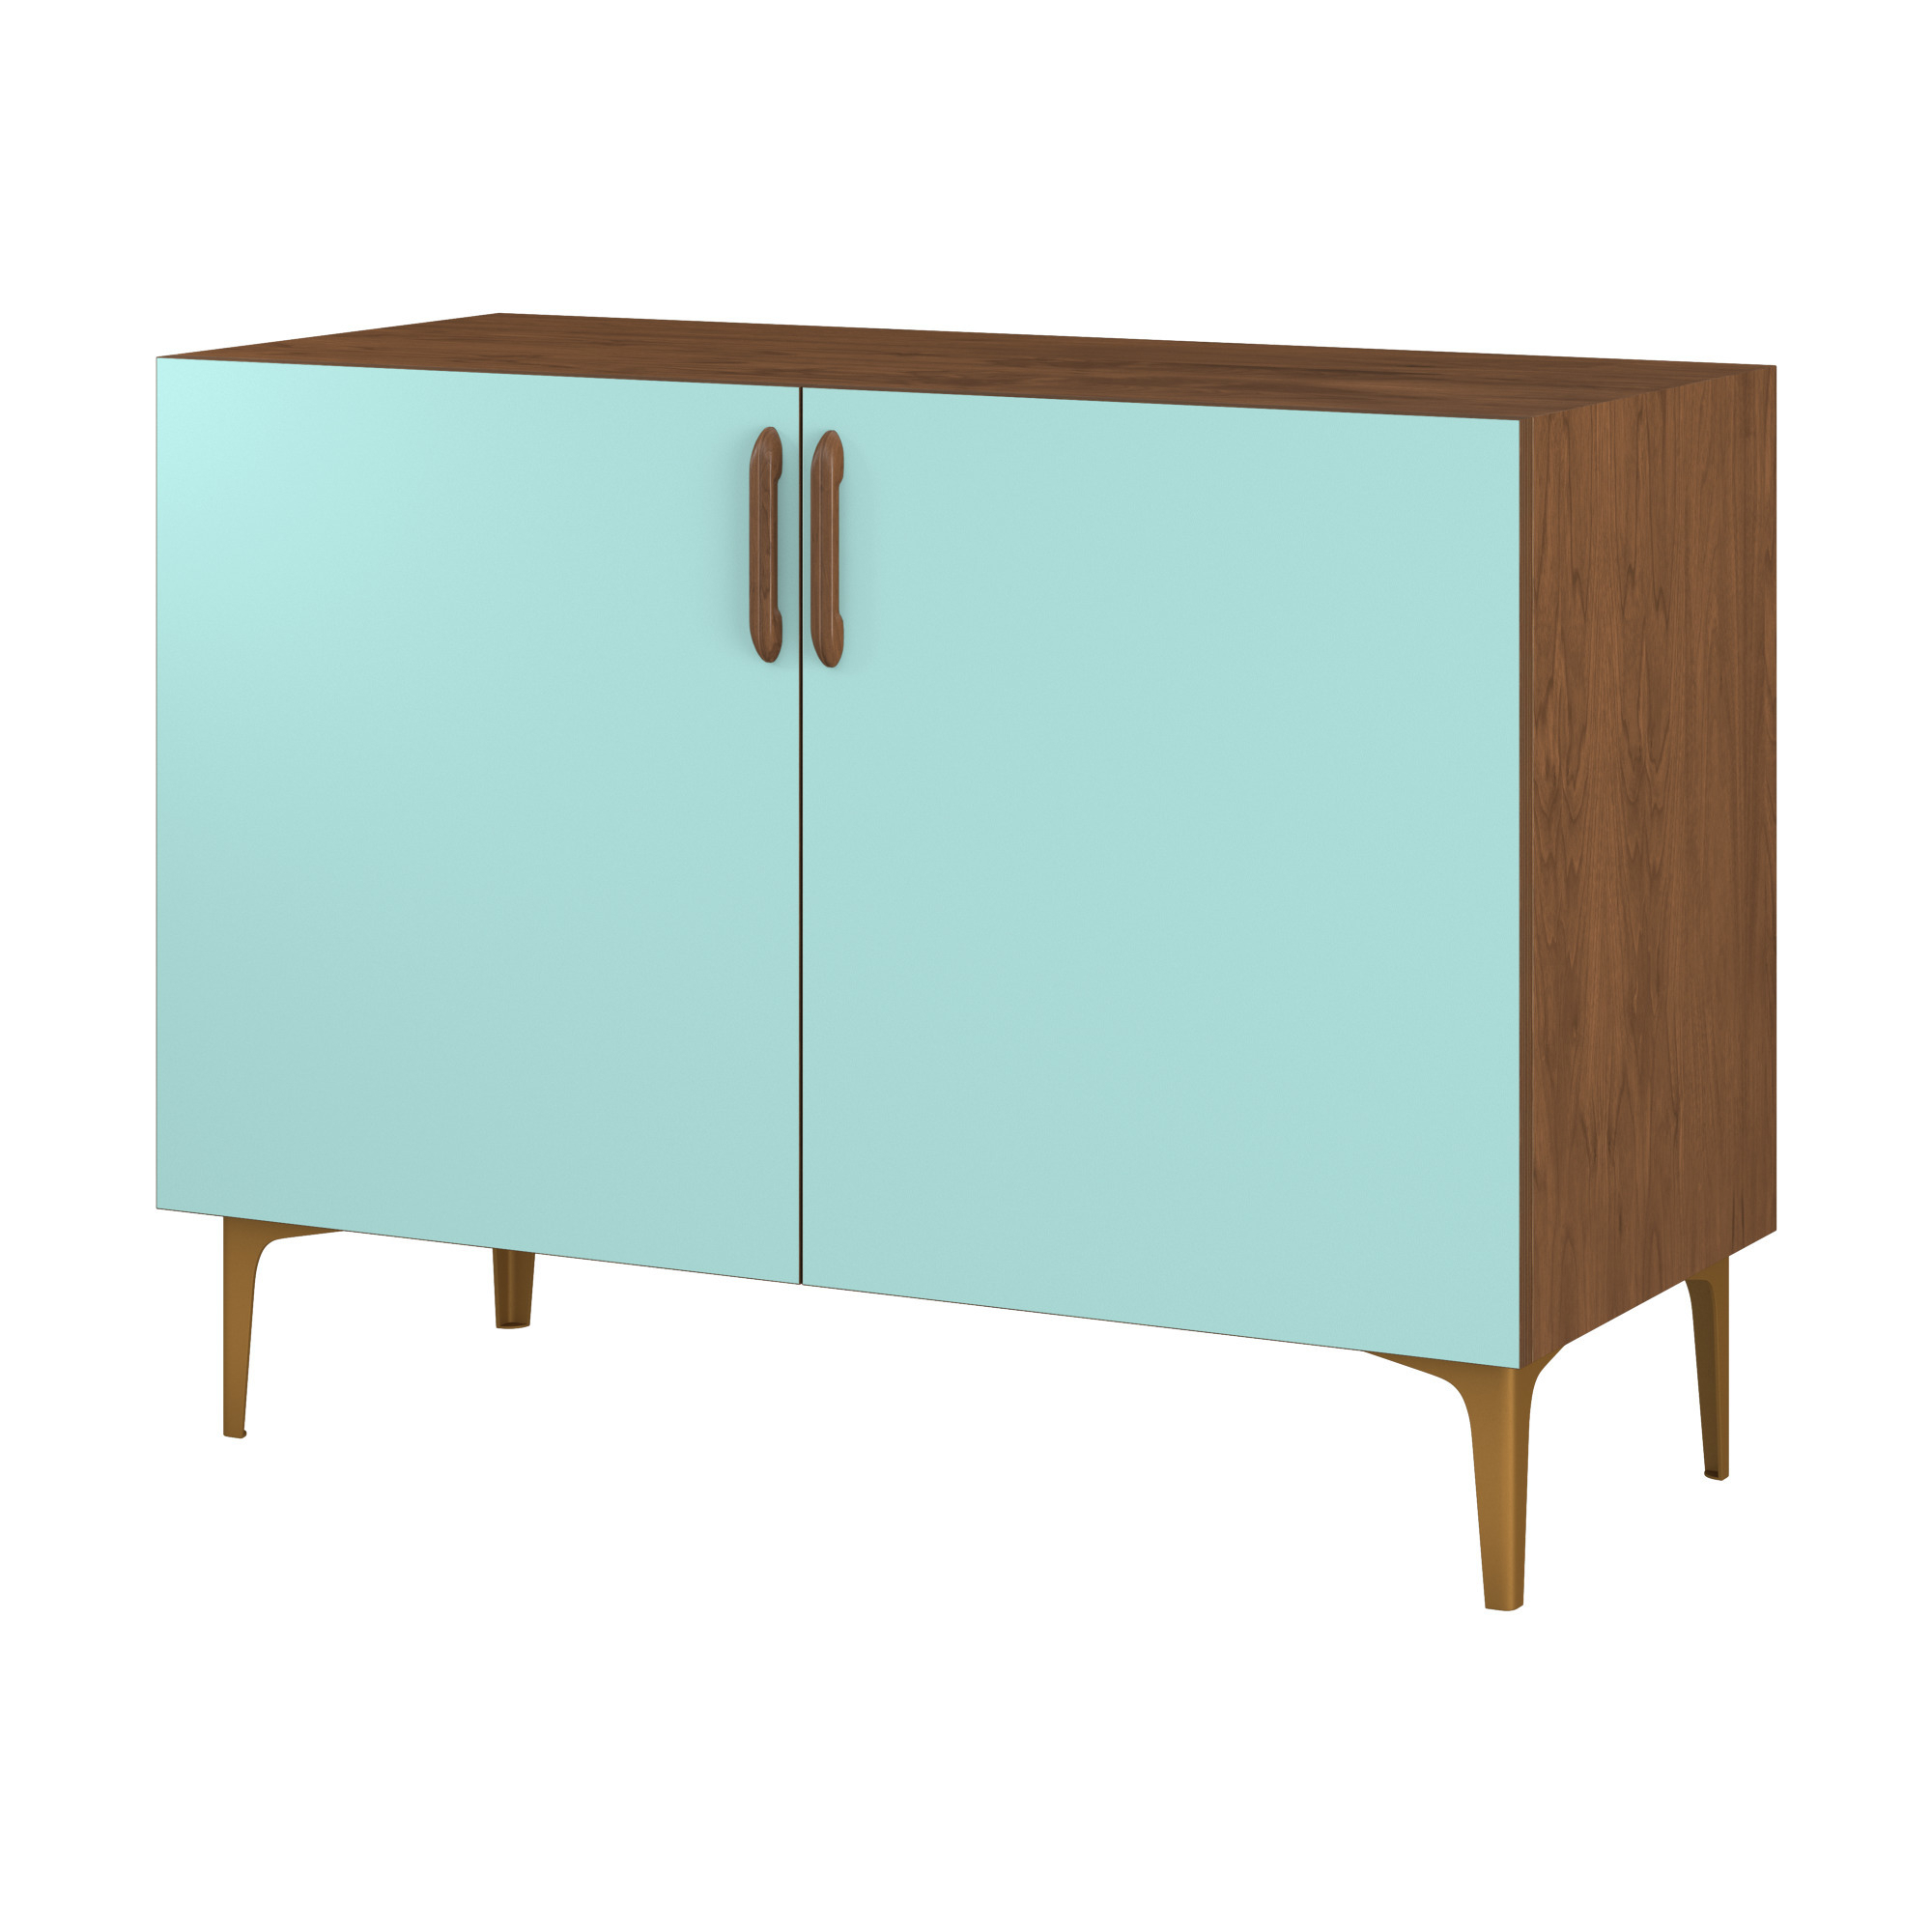 Customize Credenzas | Snugsquare Intended For Turquoise Skies Credenzas (View 7 of 20)